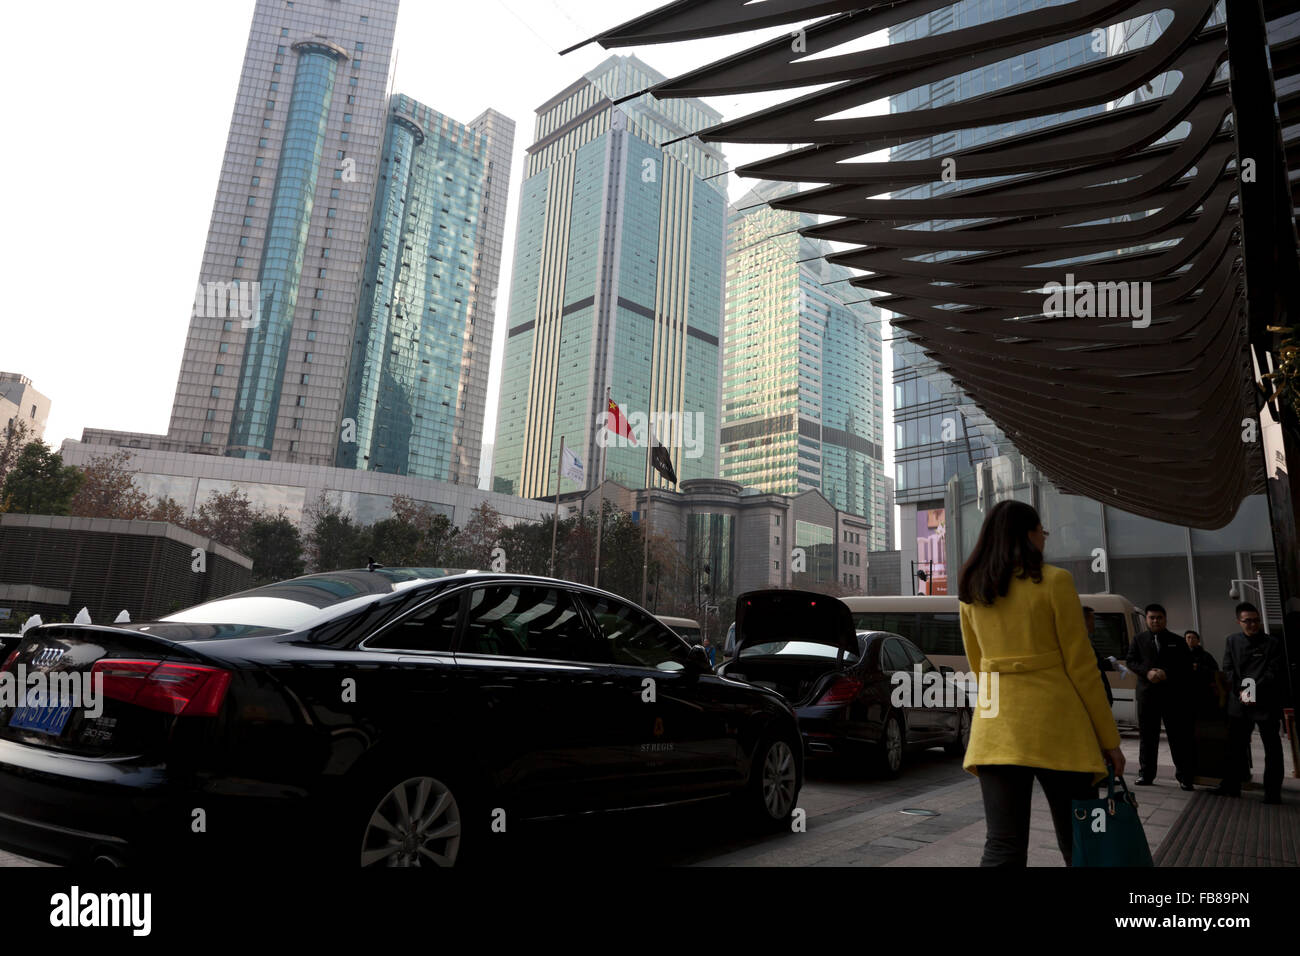 Limousines parked outside an upscale hotel amid a glut of high-rise buildings at the centre of Chengdu in China. - Stock Image